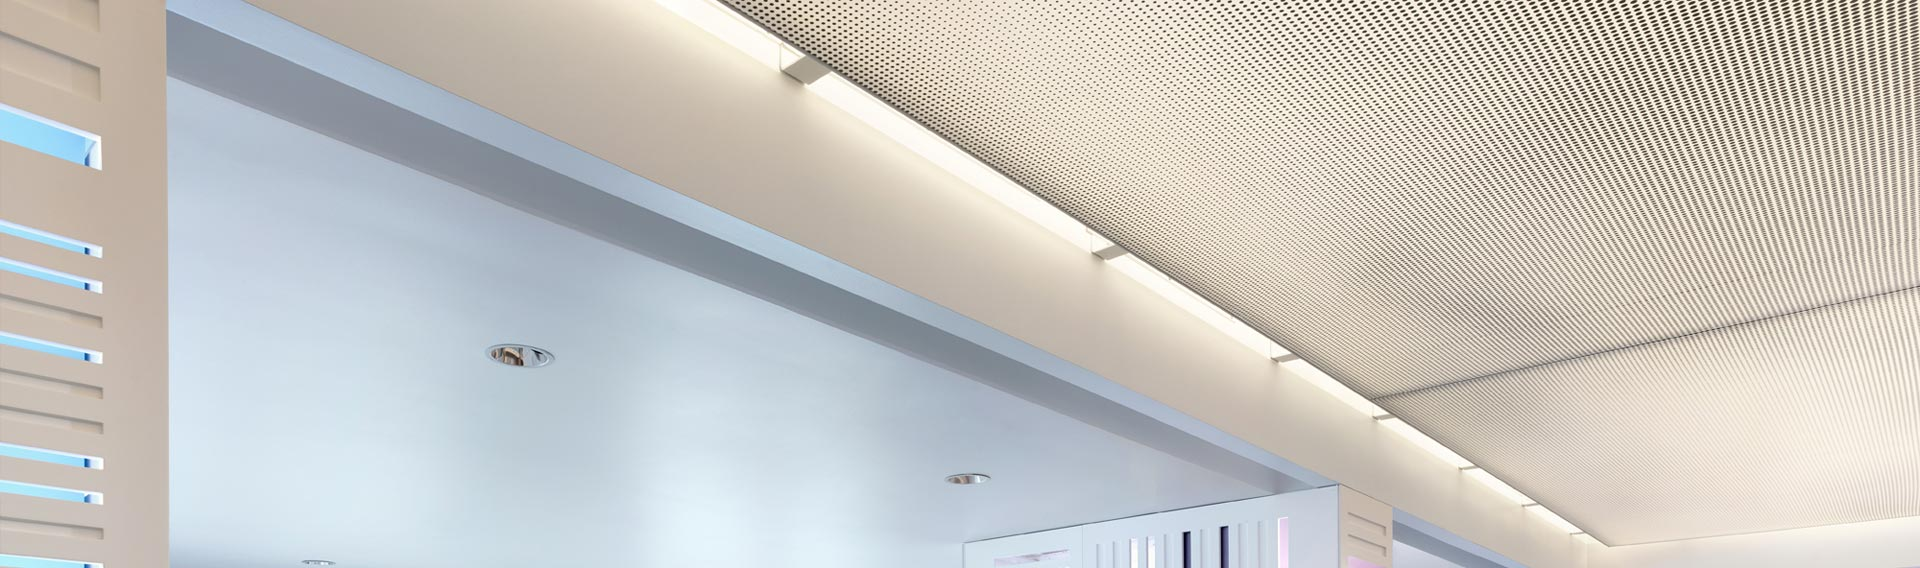 Perforated Ceilings & Walls